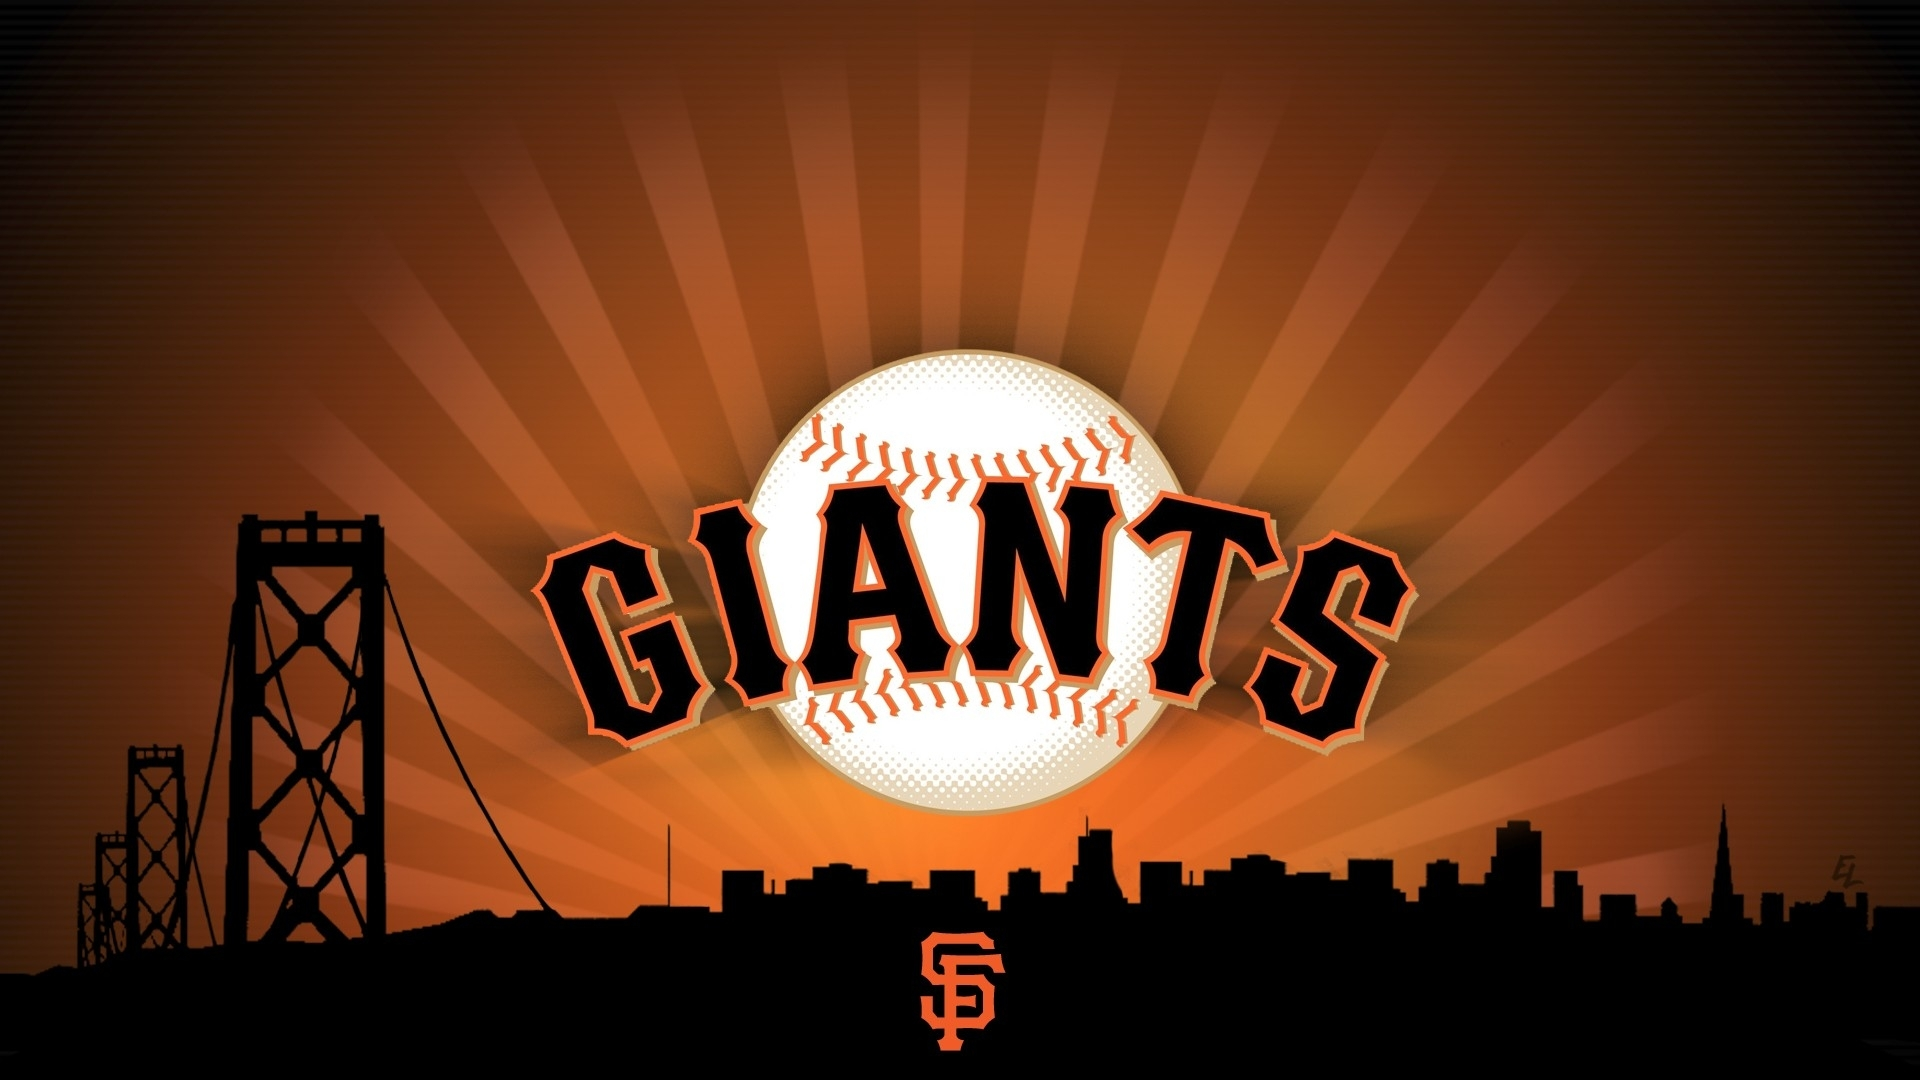 san francisco giants hd background wallpapers 32771 - baltana